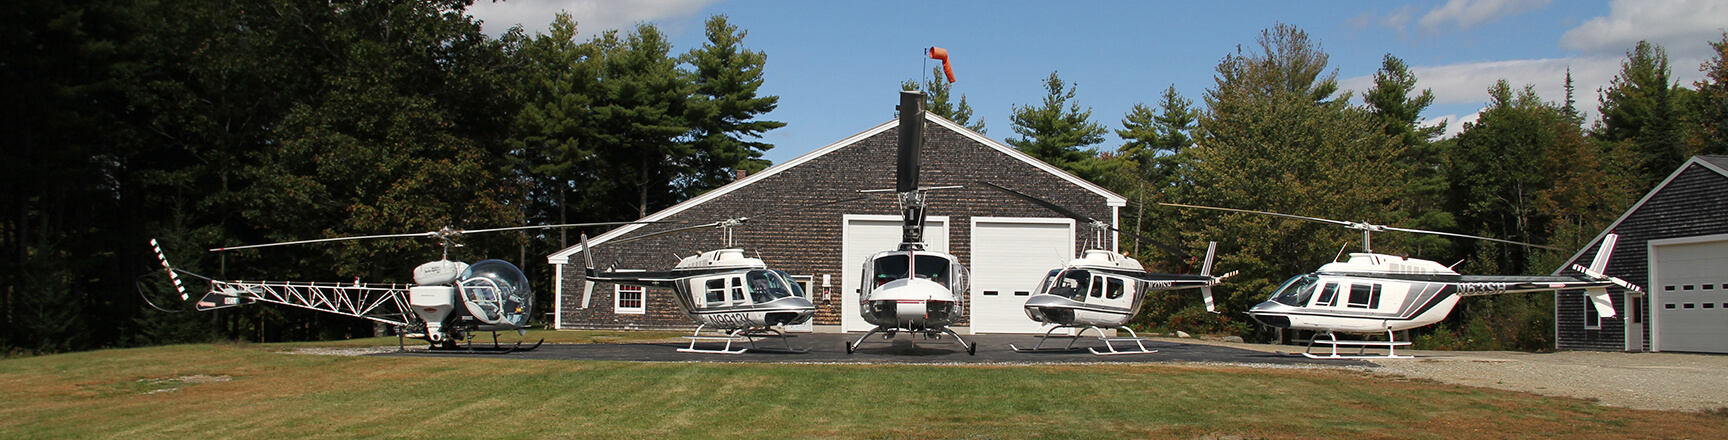 Maine Helicopters, Inc.'s fleet.